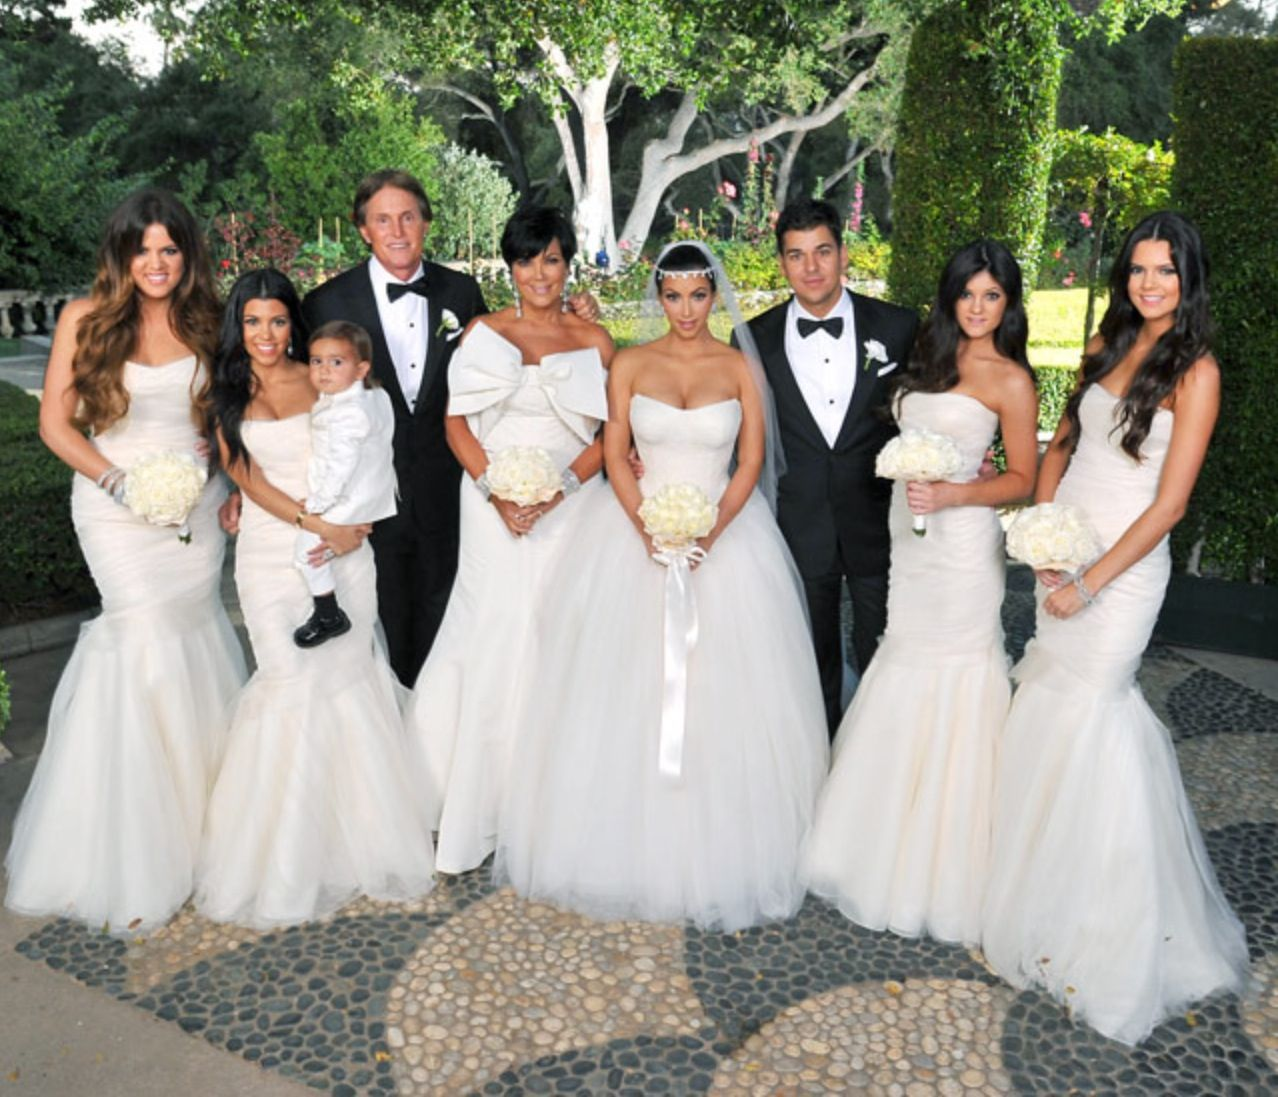 Kims wedding keeping up with the kardashians pinterest weddings kims wedding mermaid bridesmaid dressesbridesmaidswedding ombrellifo Image collections